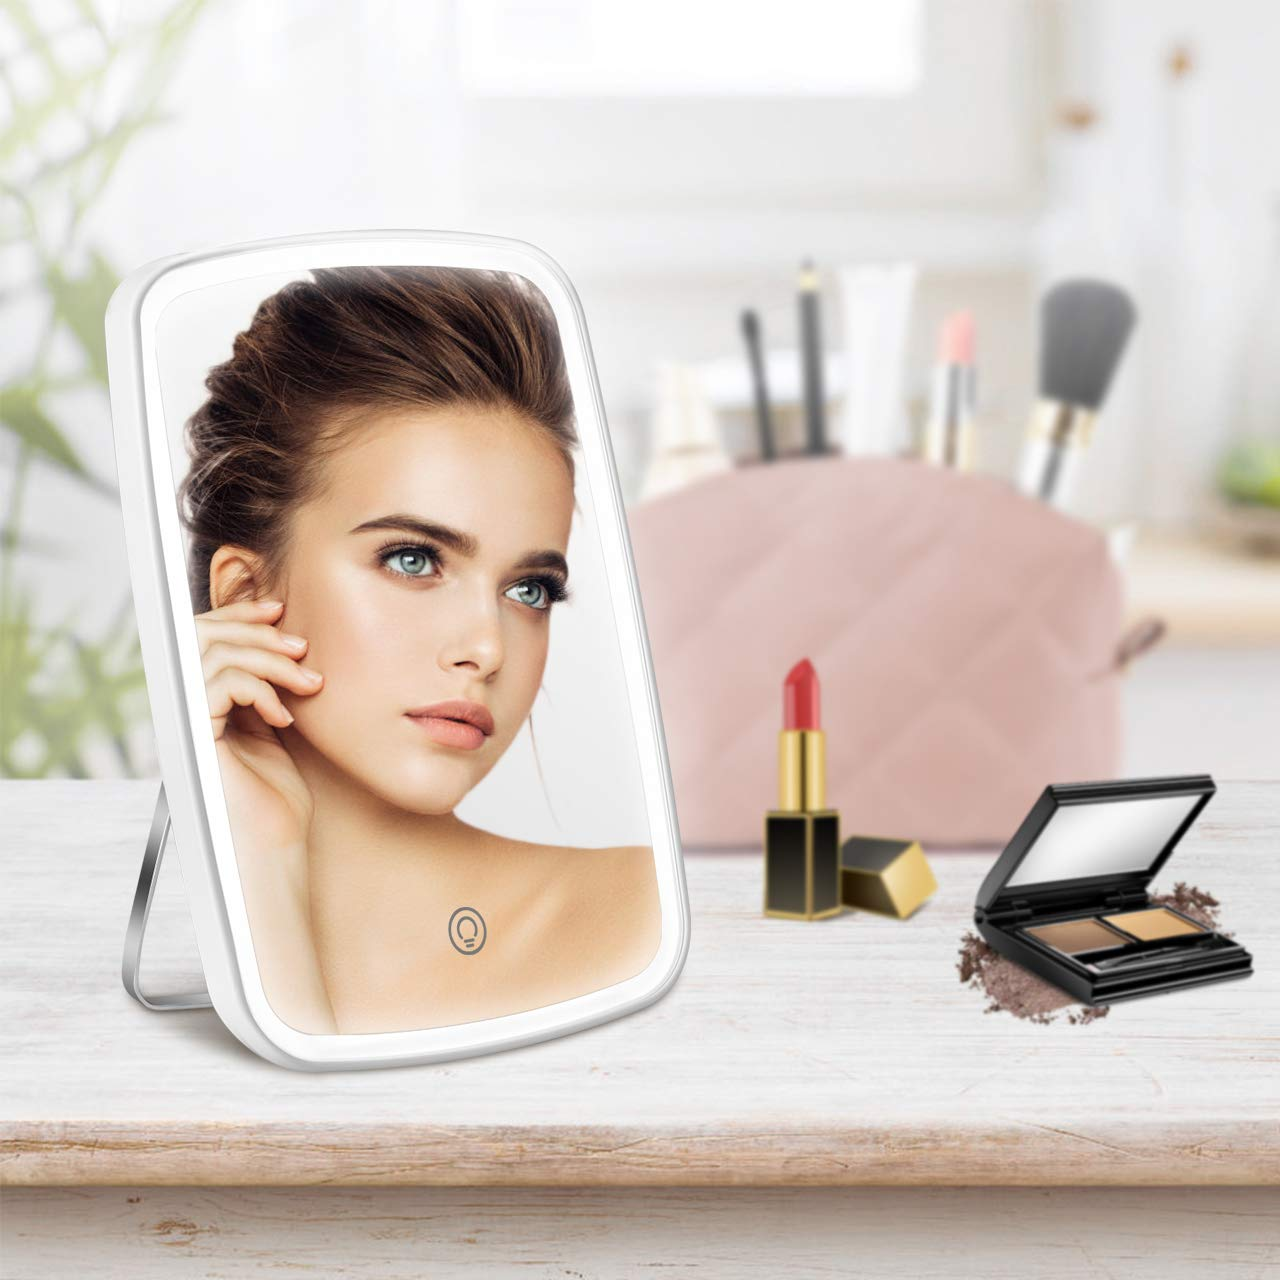 Lighted Makeup Mirror, Portable Makeup Mirror with Dimmable Lights, Touch Screen Switch, 1X/7X Magnifying LED Makeup Mirror, Adjustable Rotation, Battery or USB Operated, White